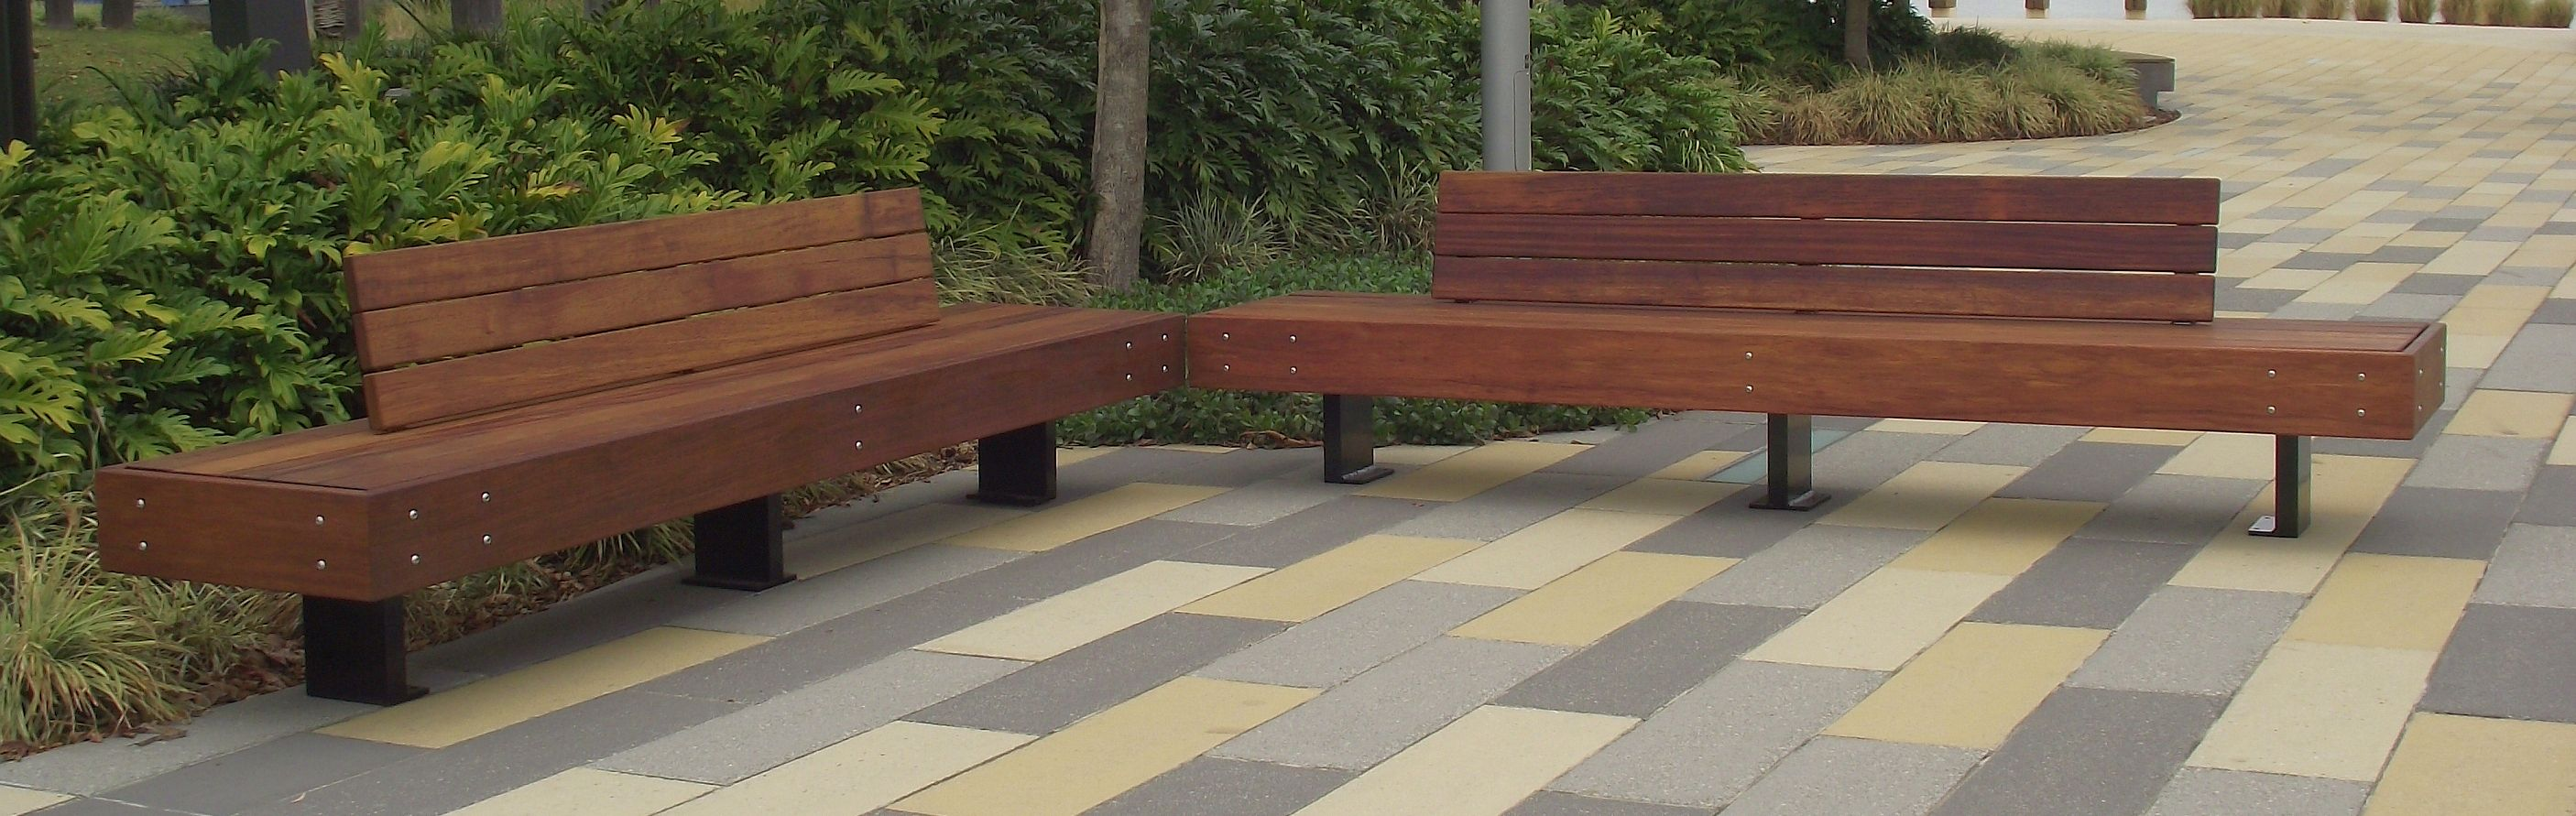 construction methods a required to diy bench pin floating corner build how seat outdoor